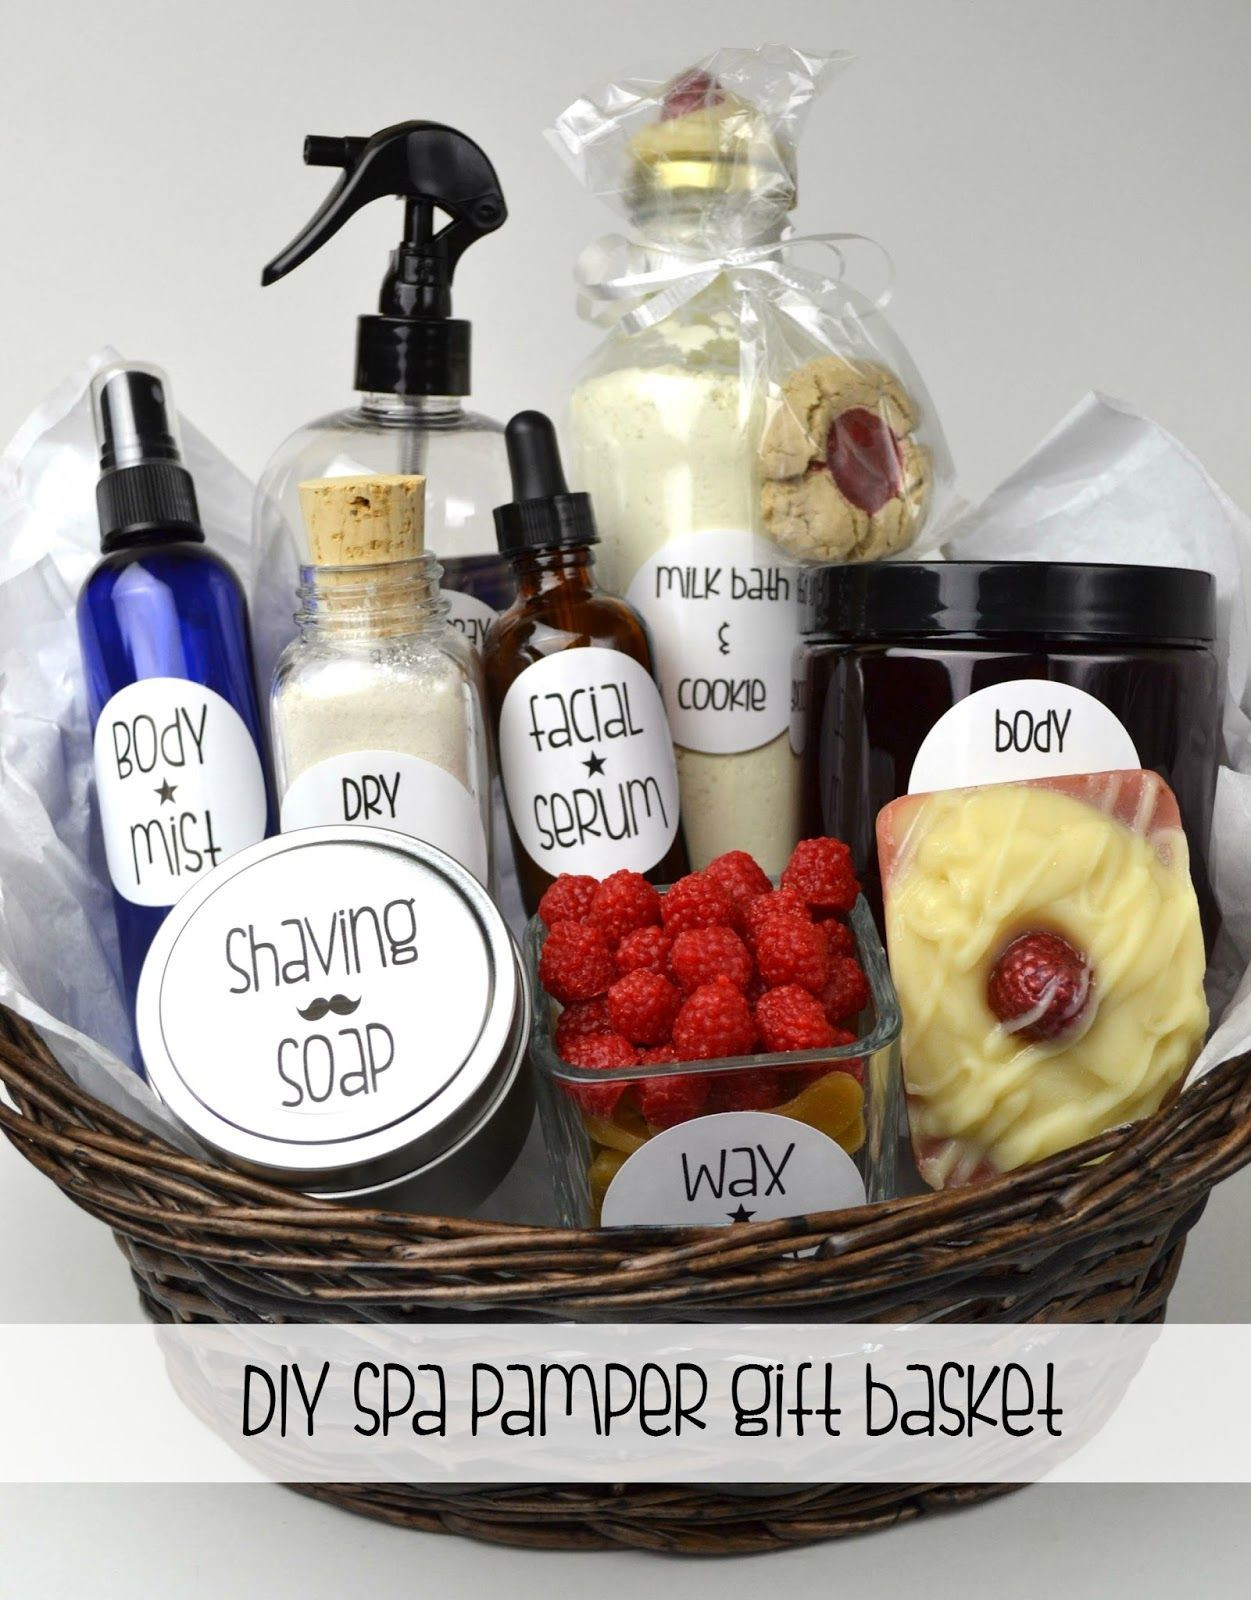 Make this DIY Spa Pamper Gift Basket for DIY Valentine s Day ts for your favorite people Includes recipes for making Apple Raspberry Soap and a Dry